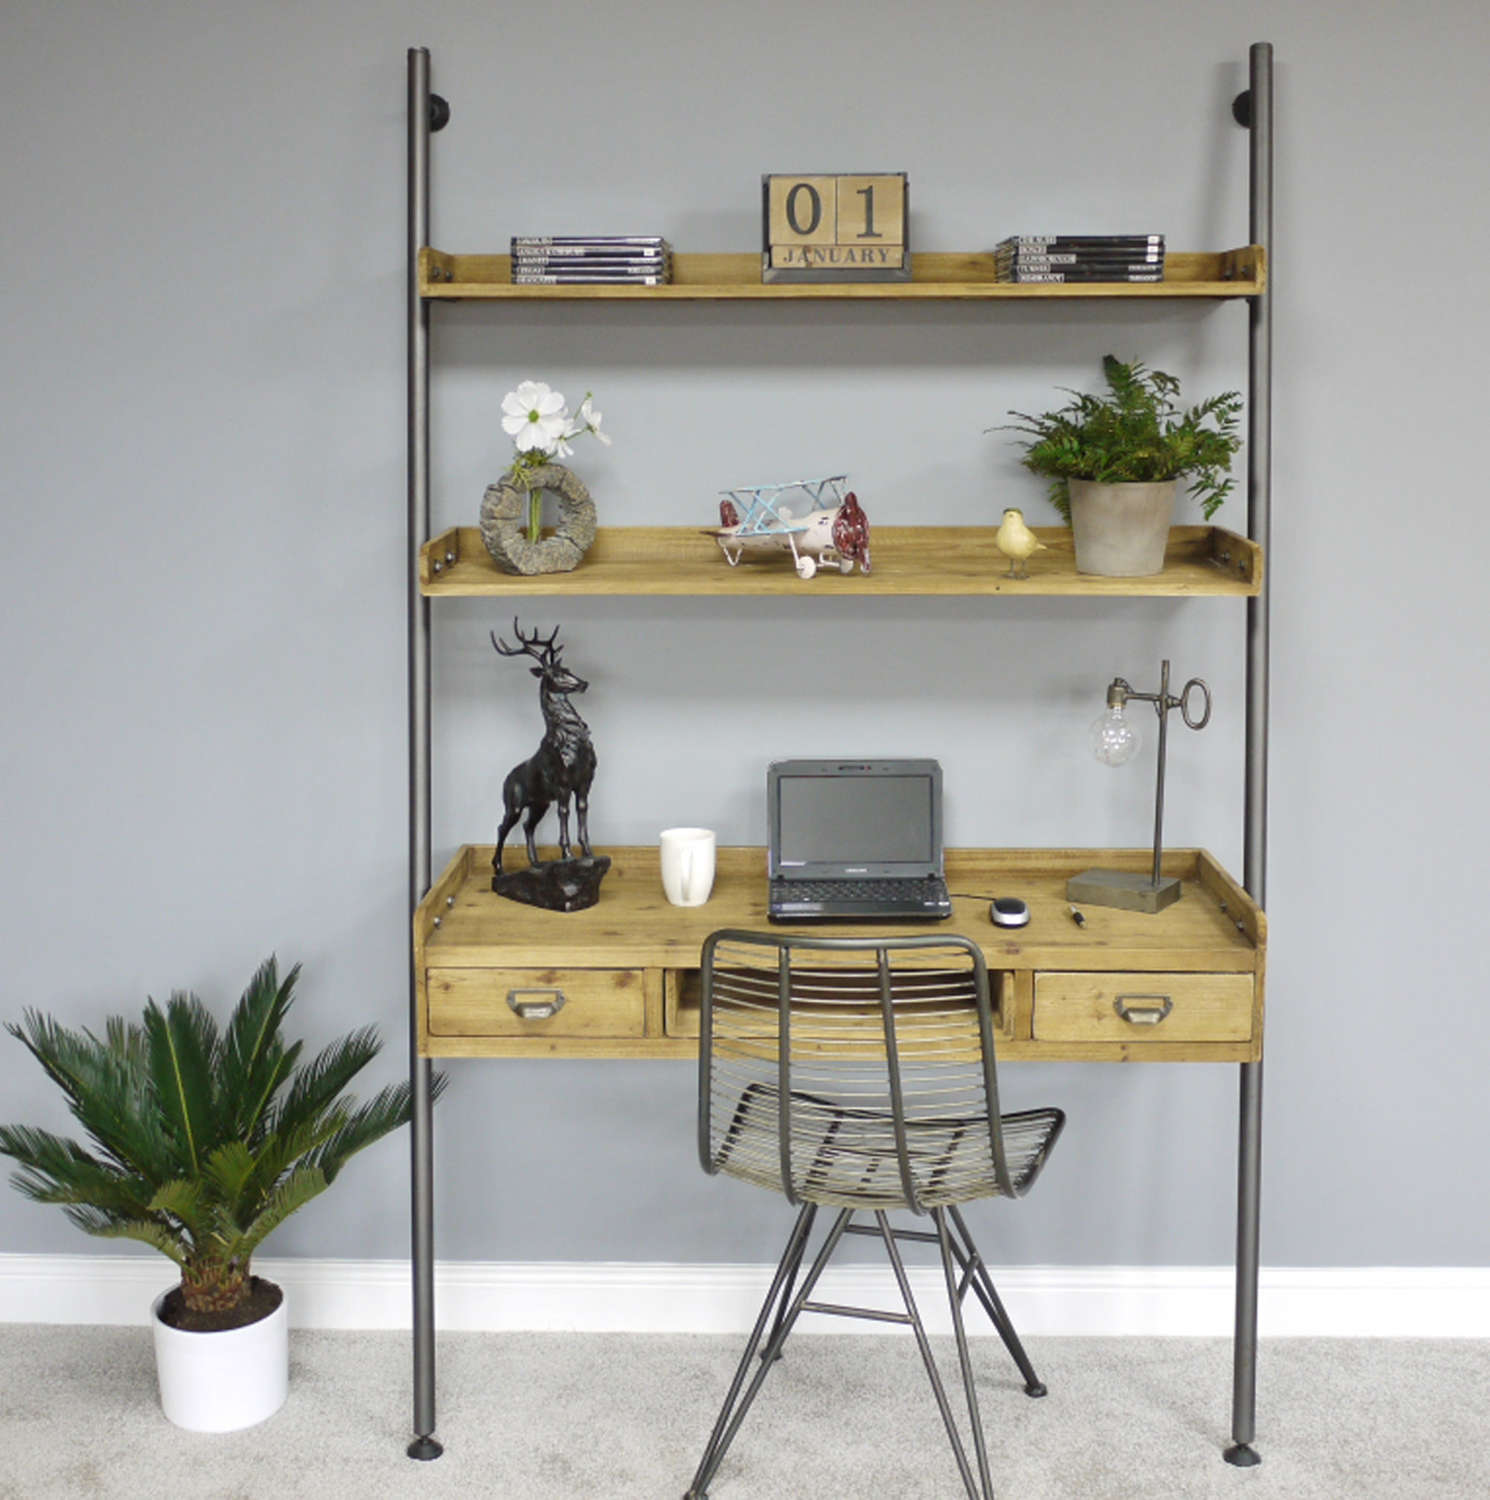 Urban style Desk with ladder style shelving